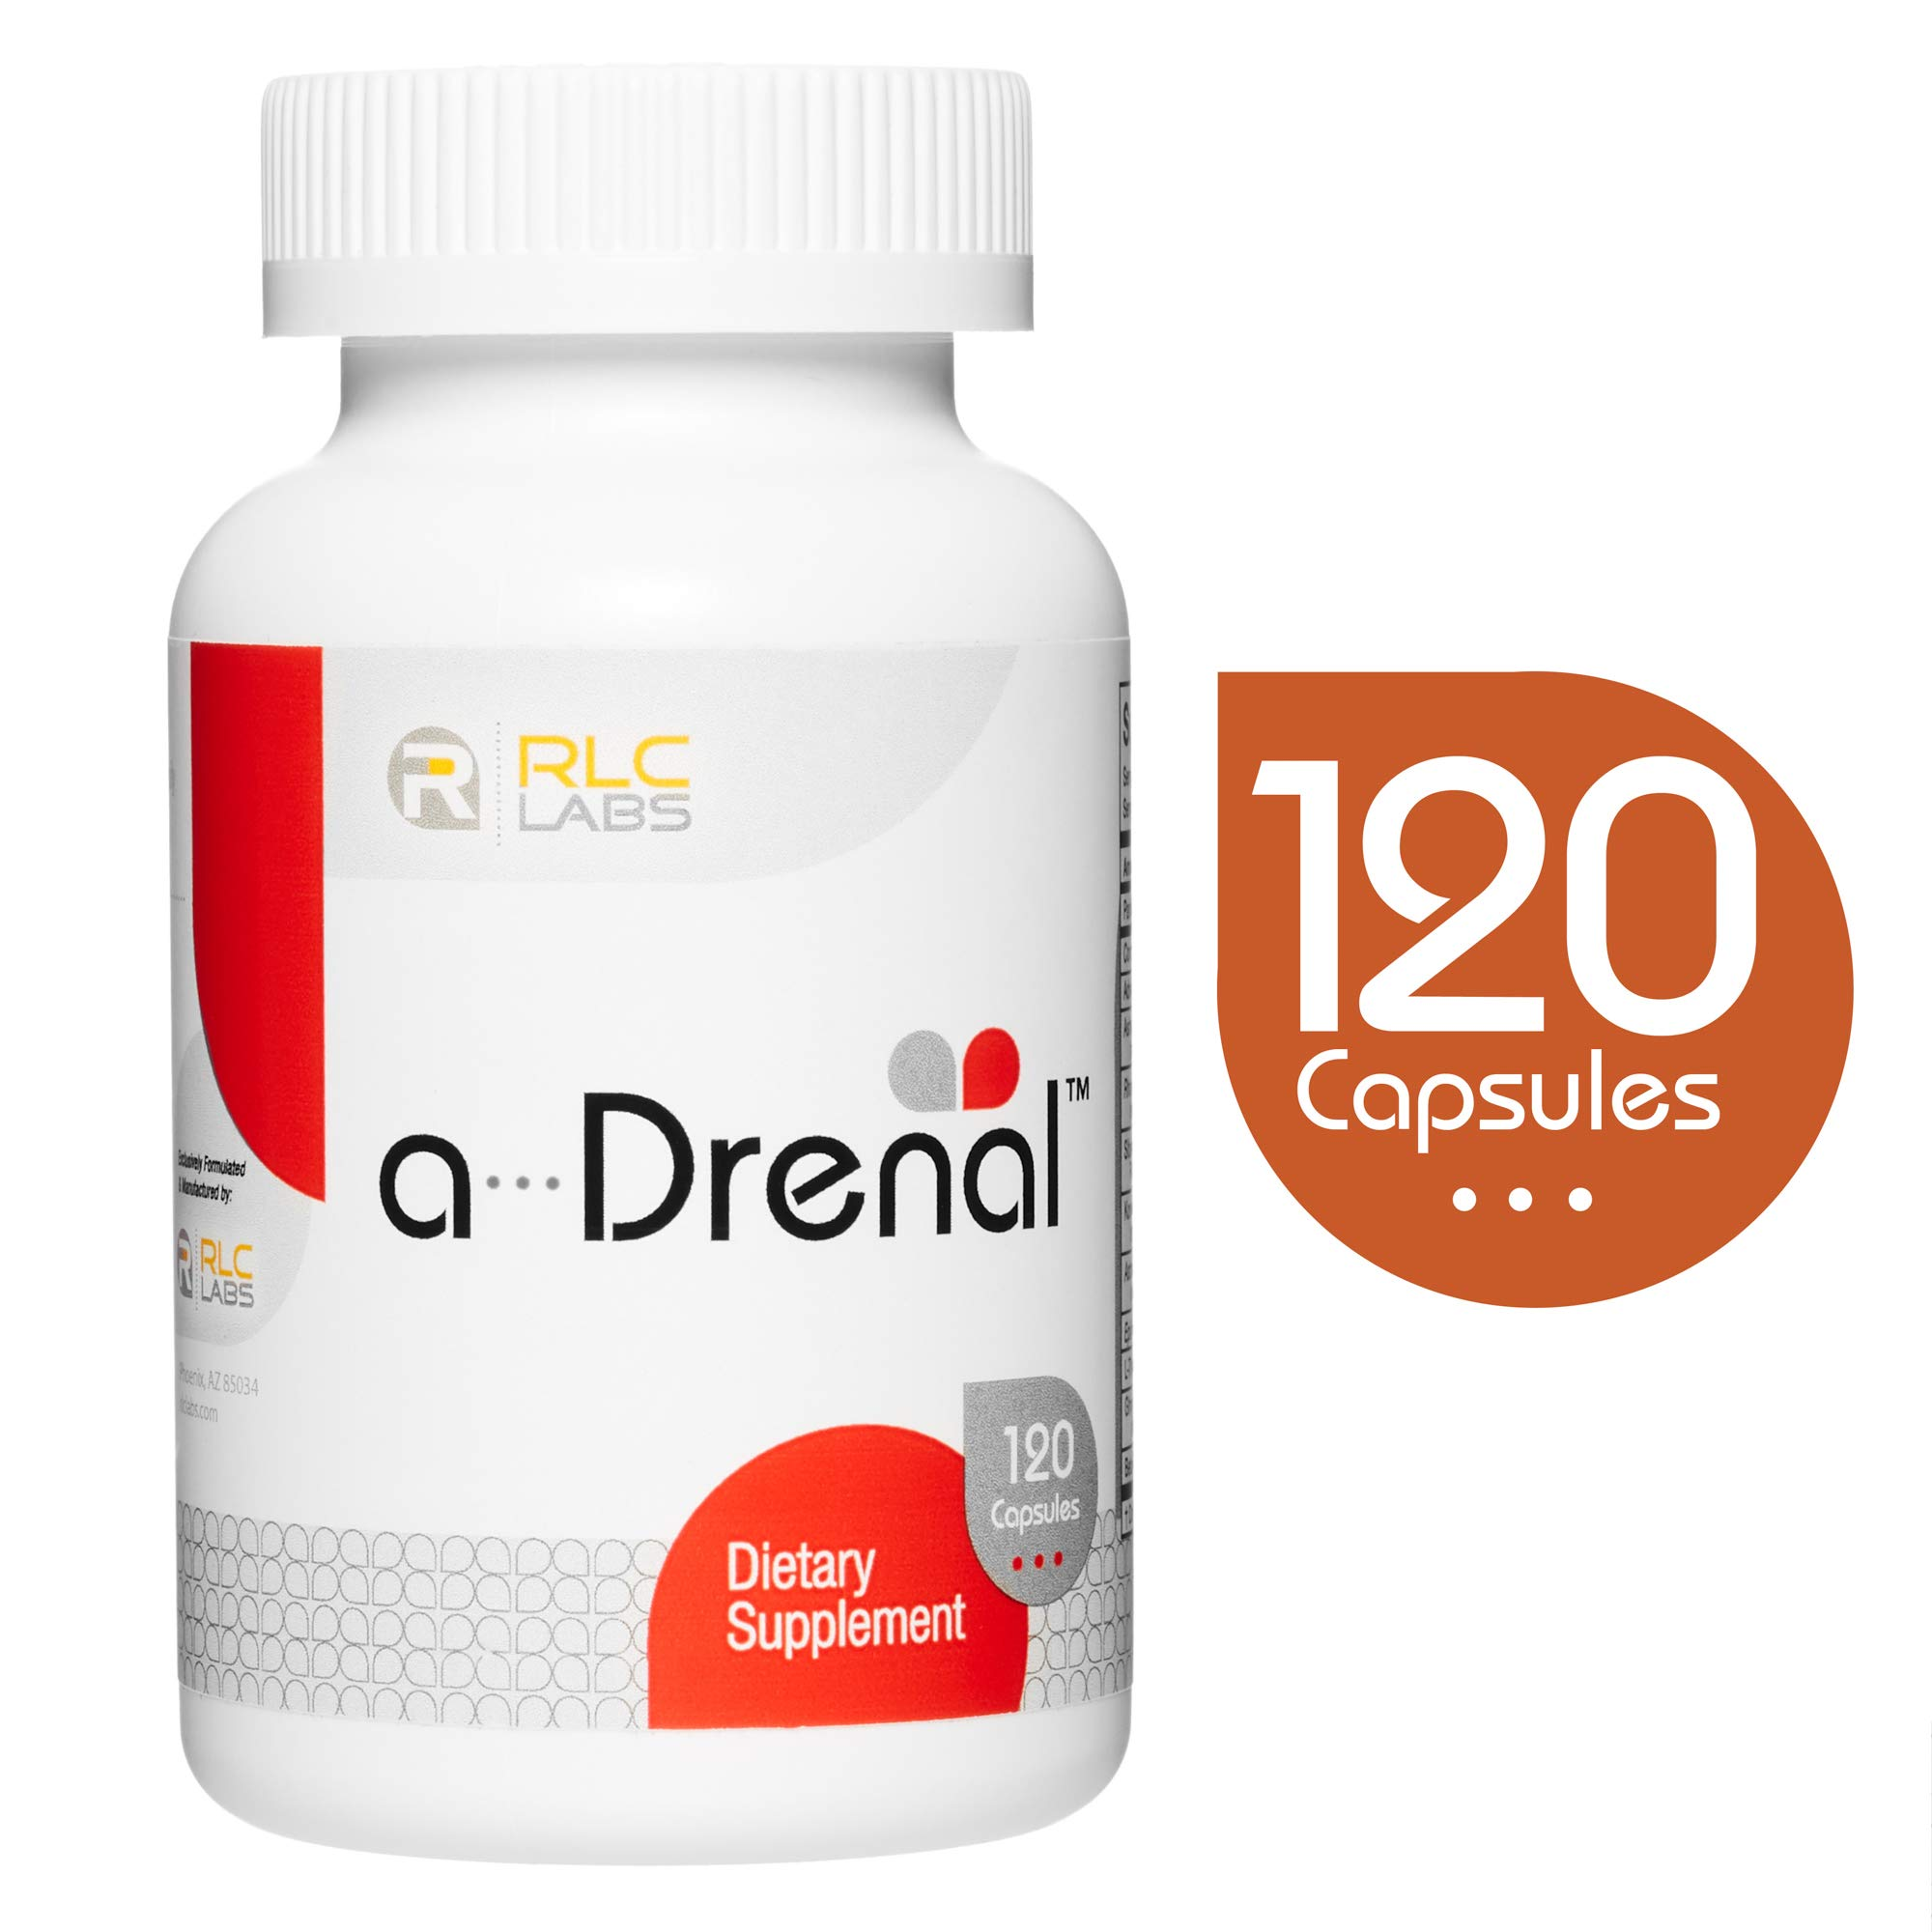 RLC, a-Drenal, Natural Supplement to Support Adrenal Health, Stress Relief and Energy, 120 capsules (30 servings) by RLC Labs